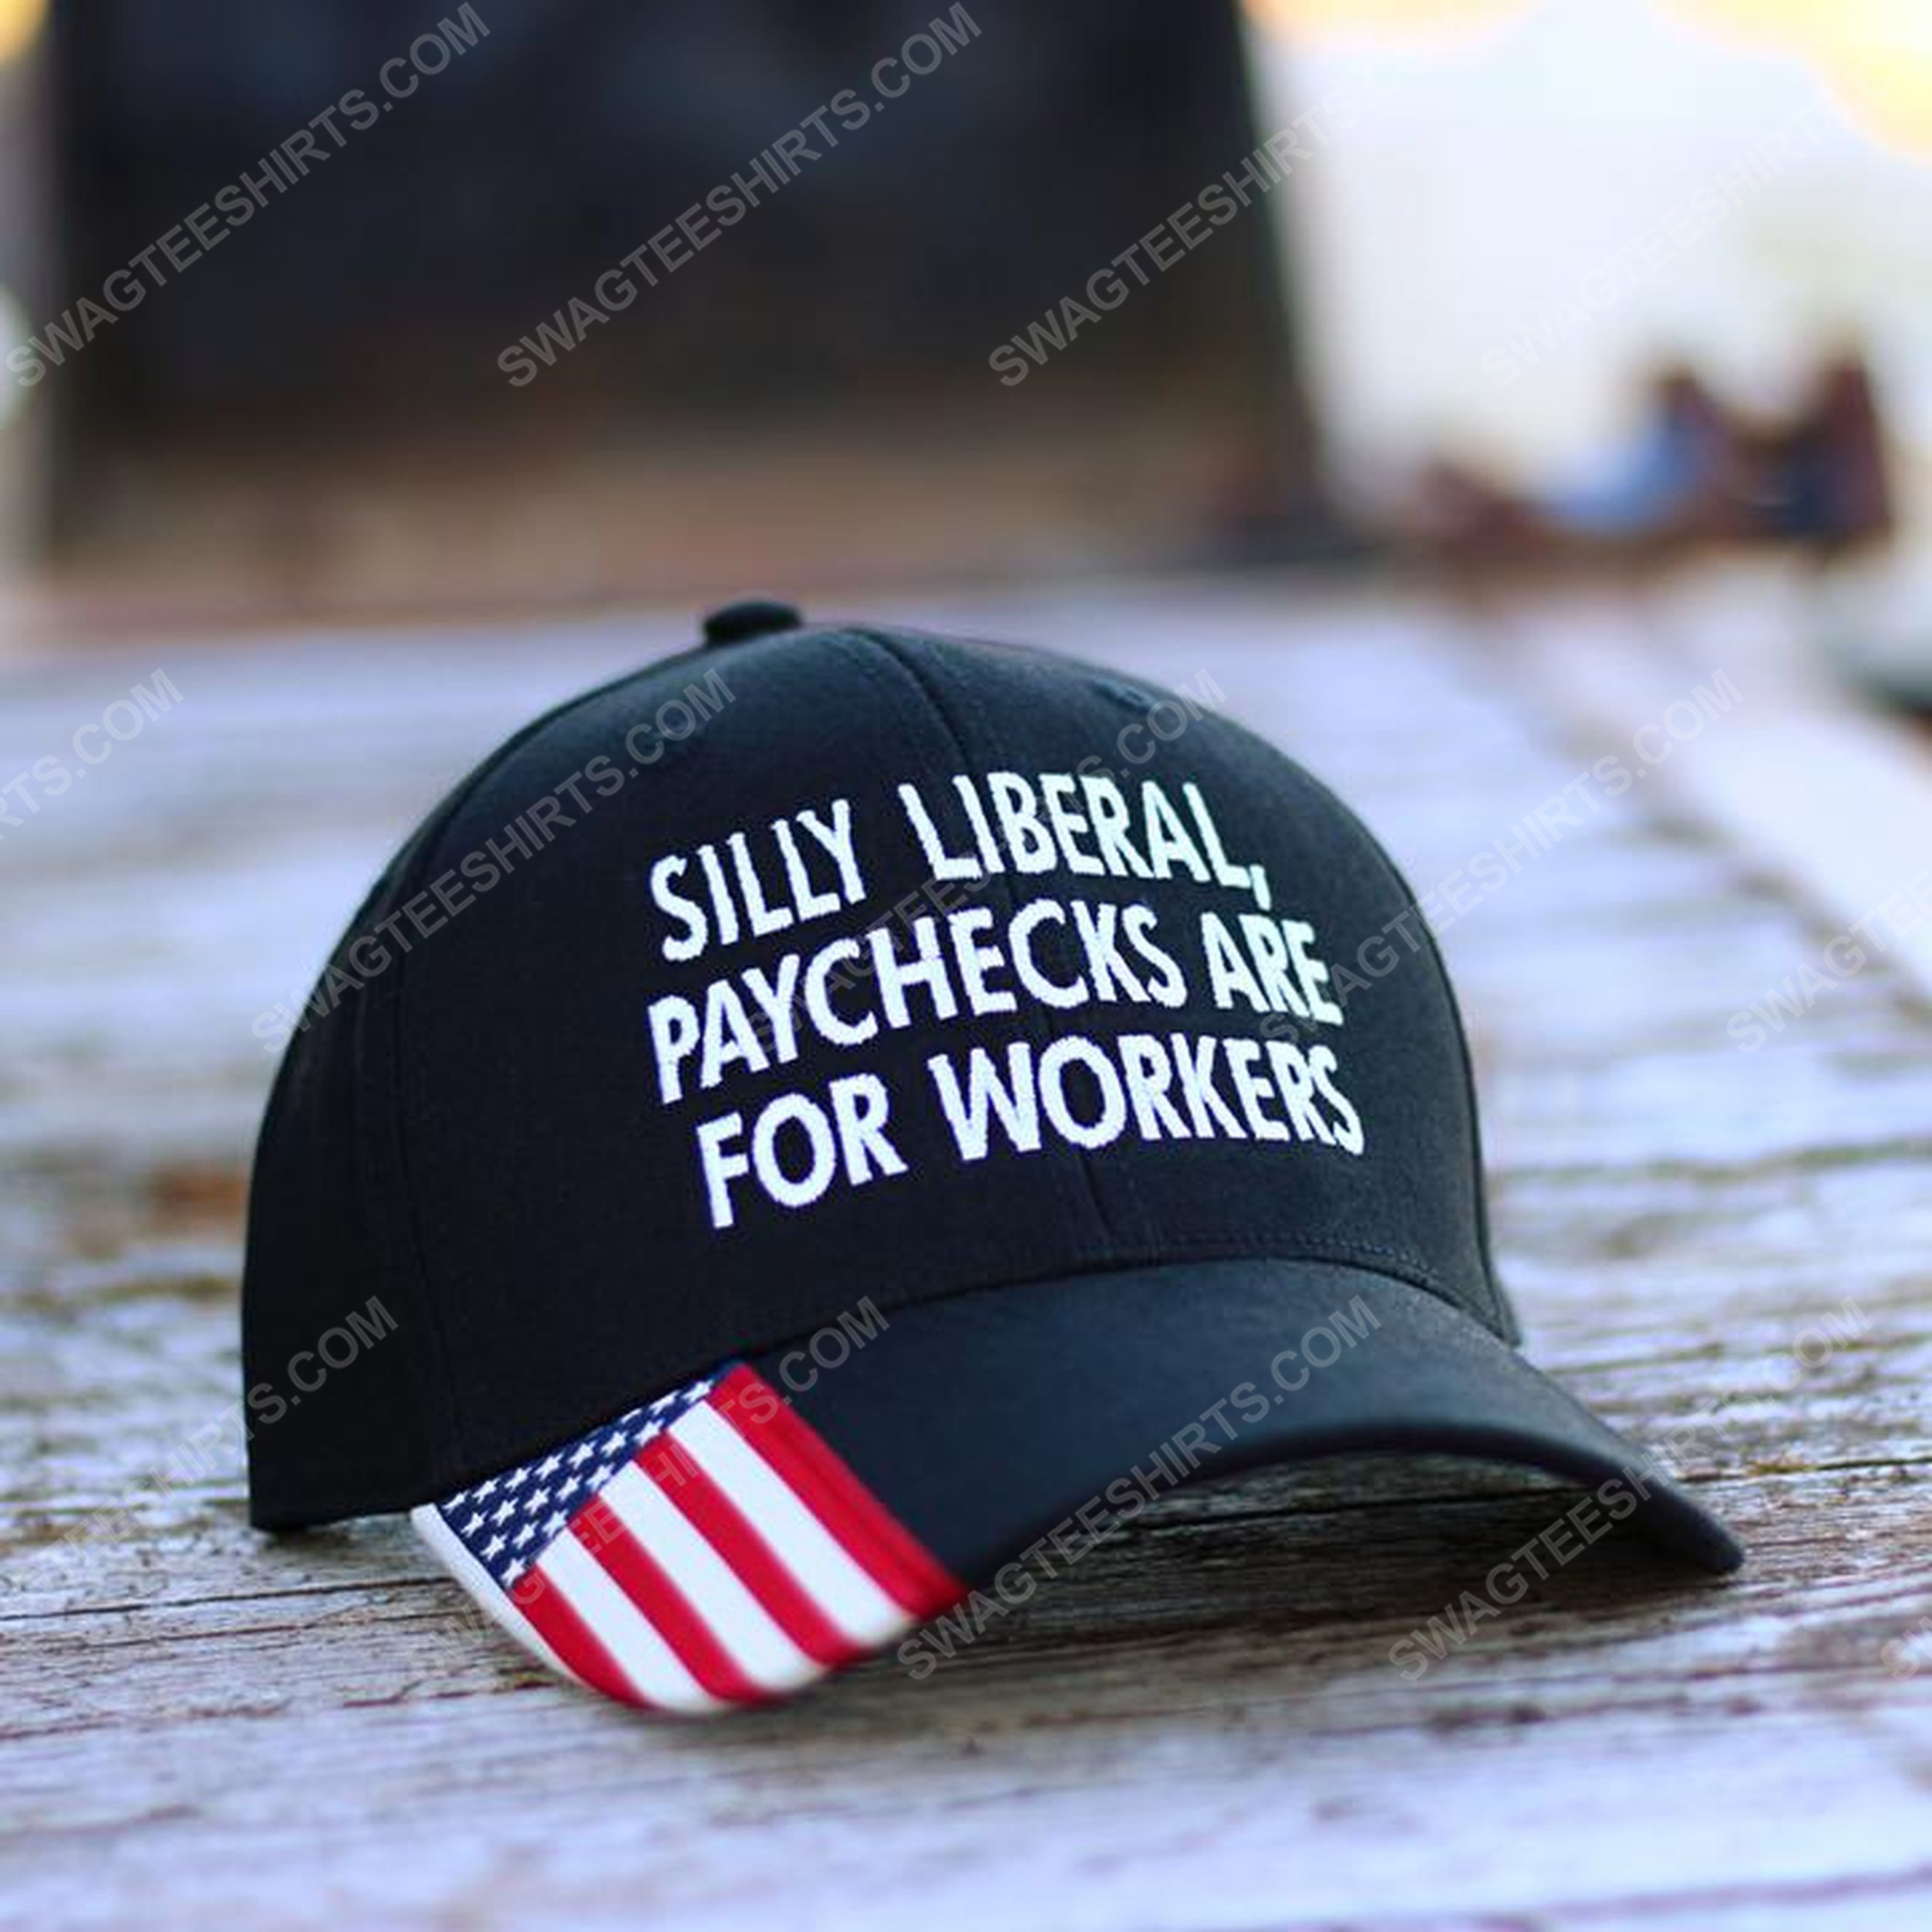 Silly liberal paychecks are for workers full print classic hat 1